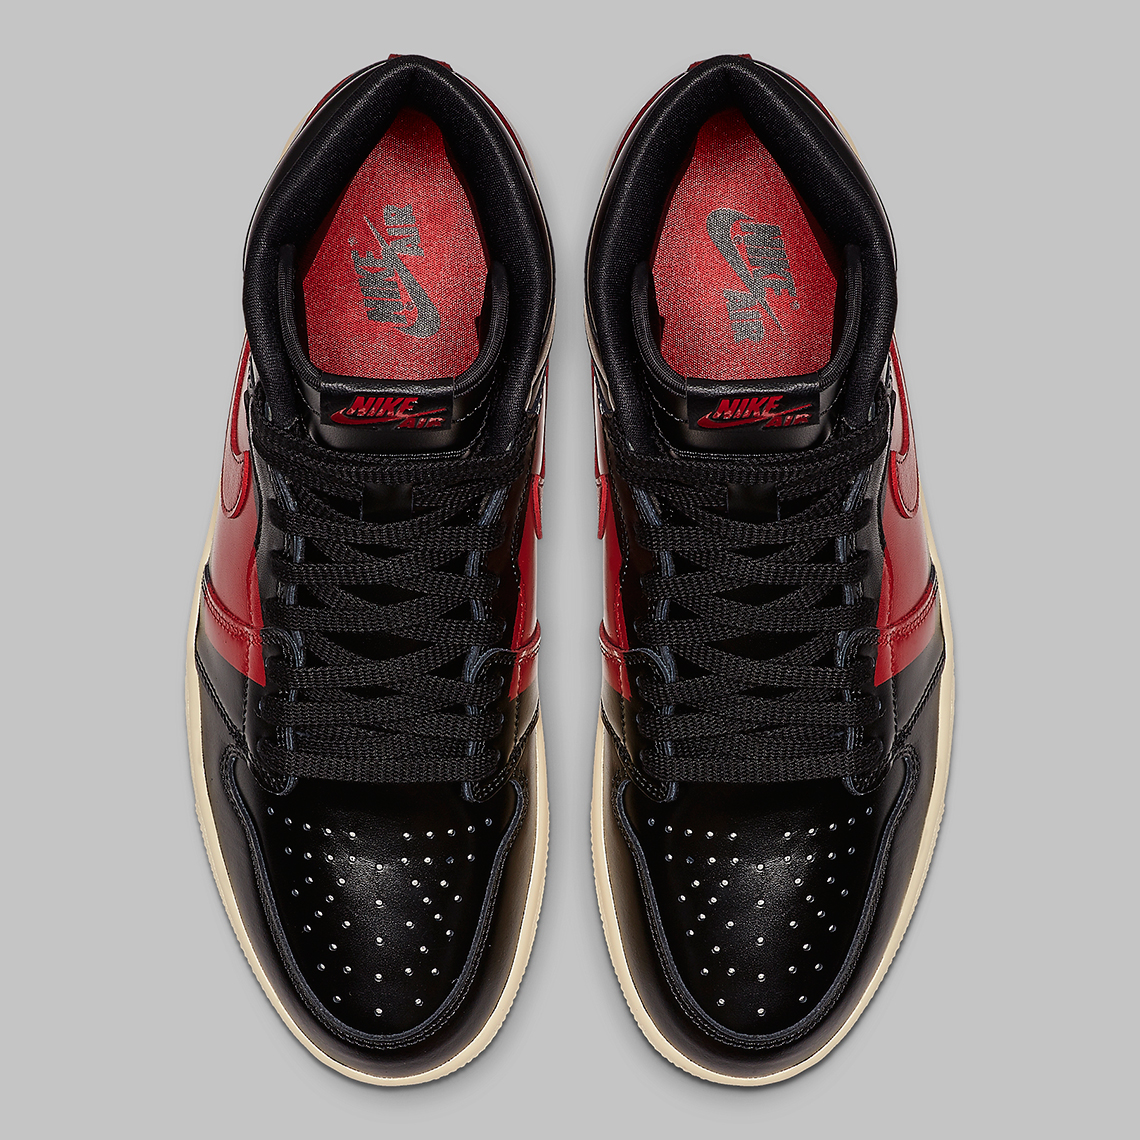 competitive price 8910d 713b5 Air Jordan 1 Defiant Buyer s Guide  175. Color  Black University Red-Muslin  Style Code  BQ6682-006